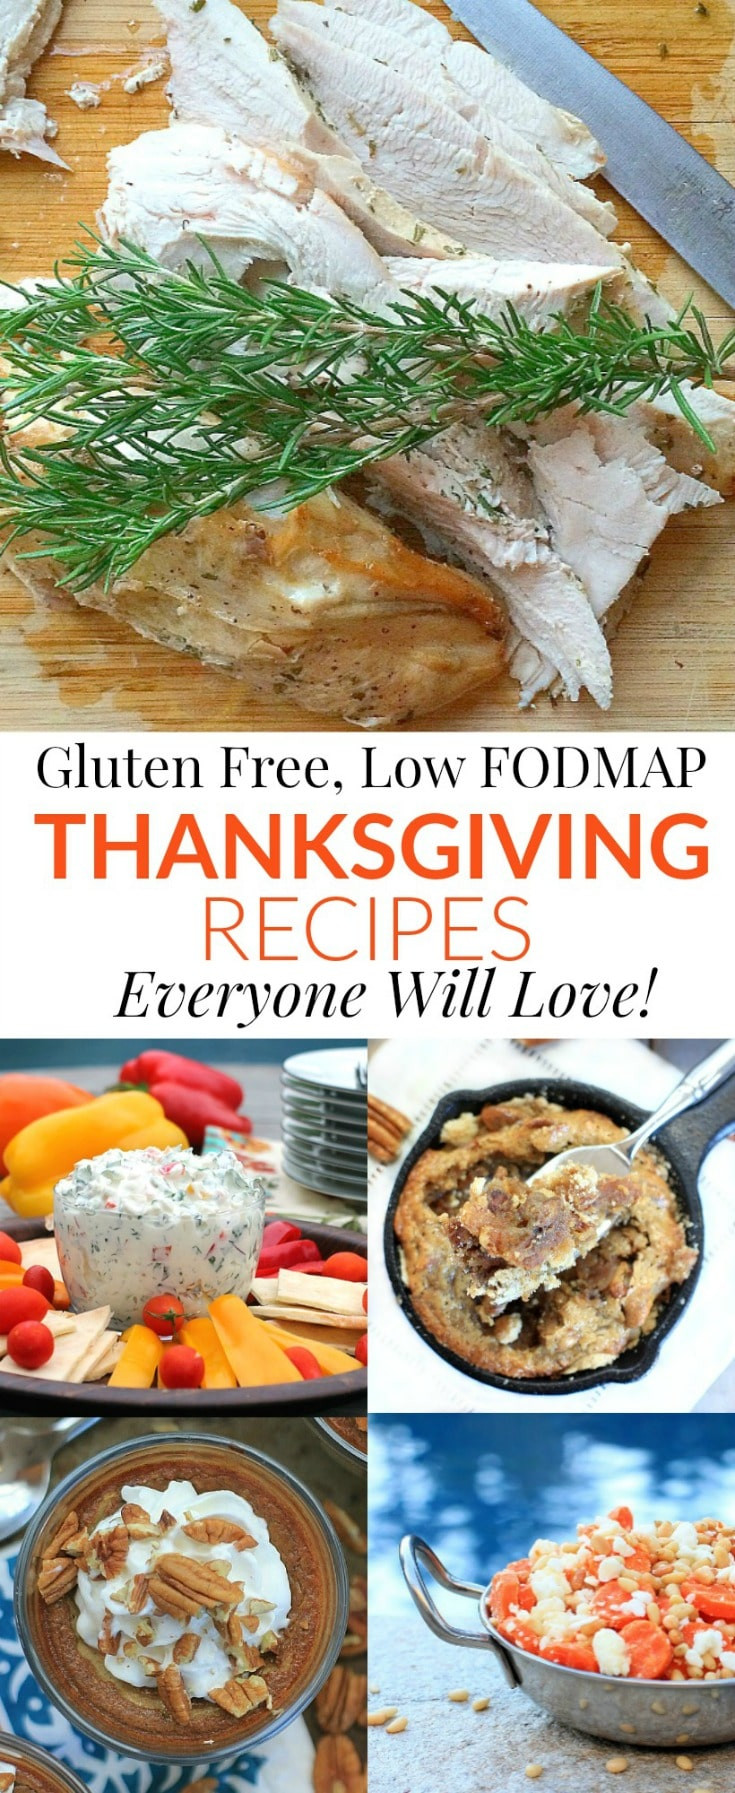 Dairy Free Thanksgiving Recipes  Gluten Free Low FODMAP Thanksgiving Recipes Everyone Will